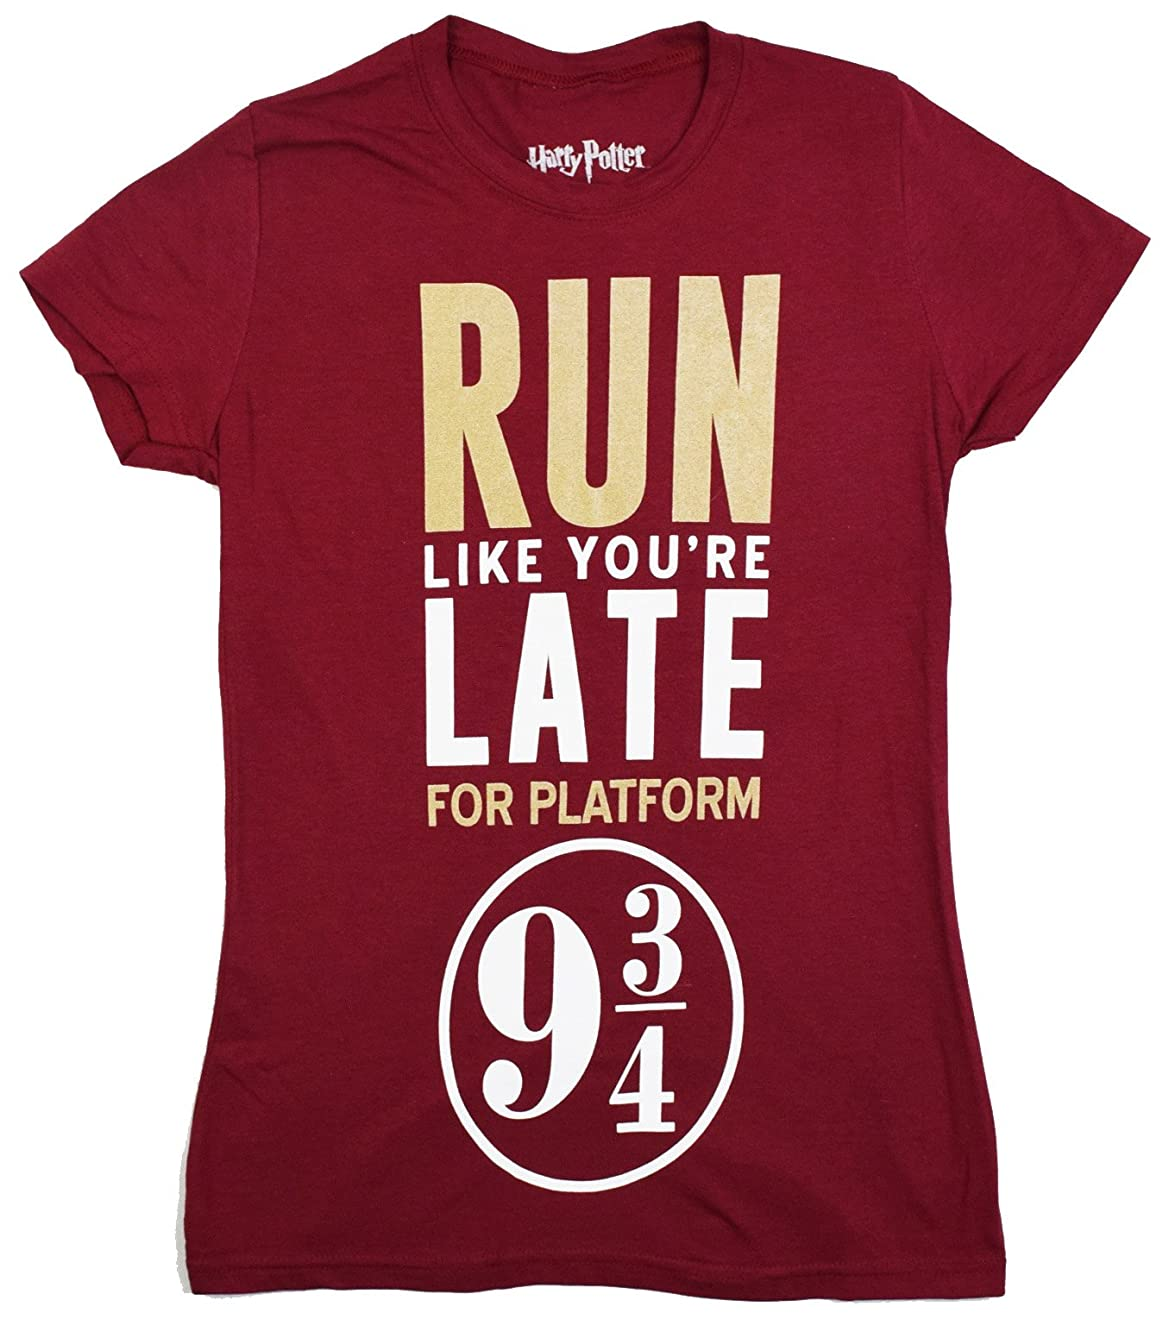 Harry Potter Run Like Platform 9 3/4 Juniors T-Shirt Licensed